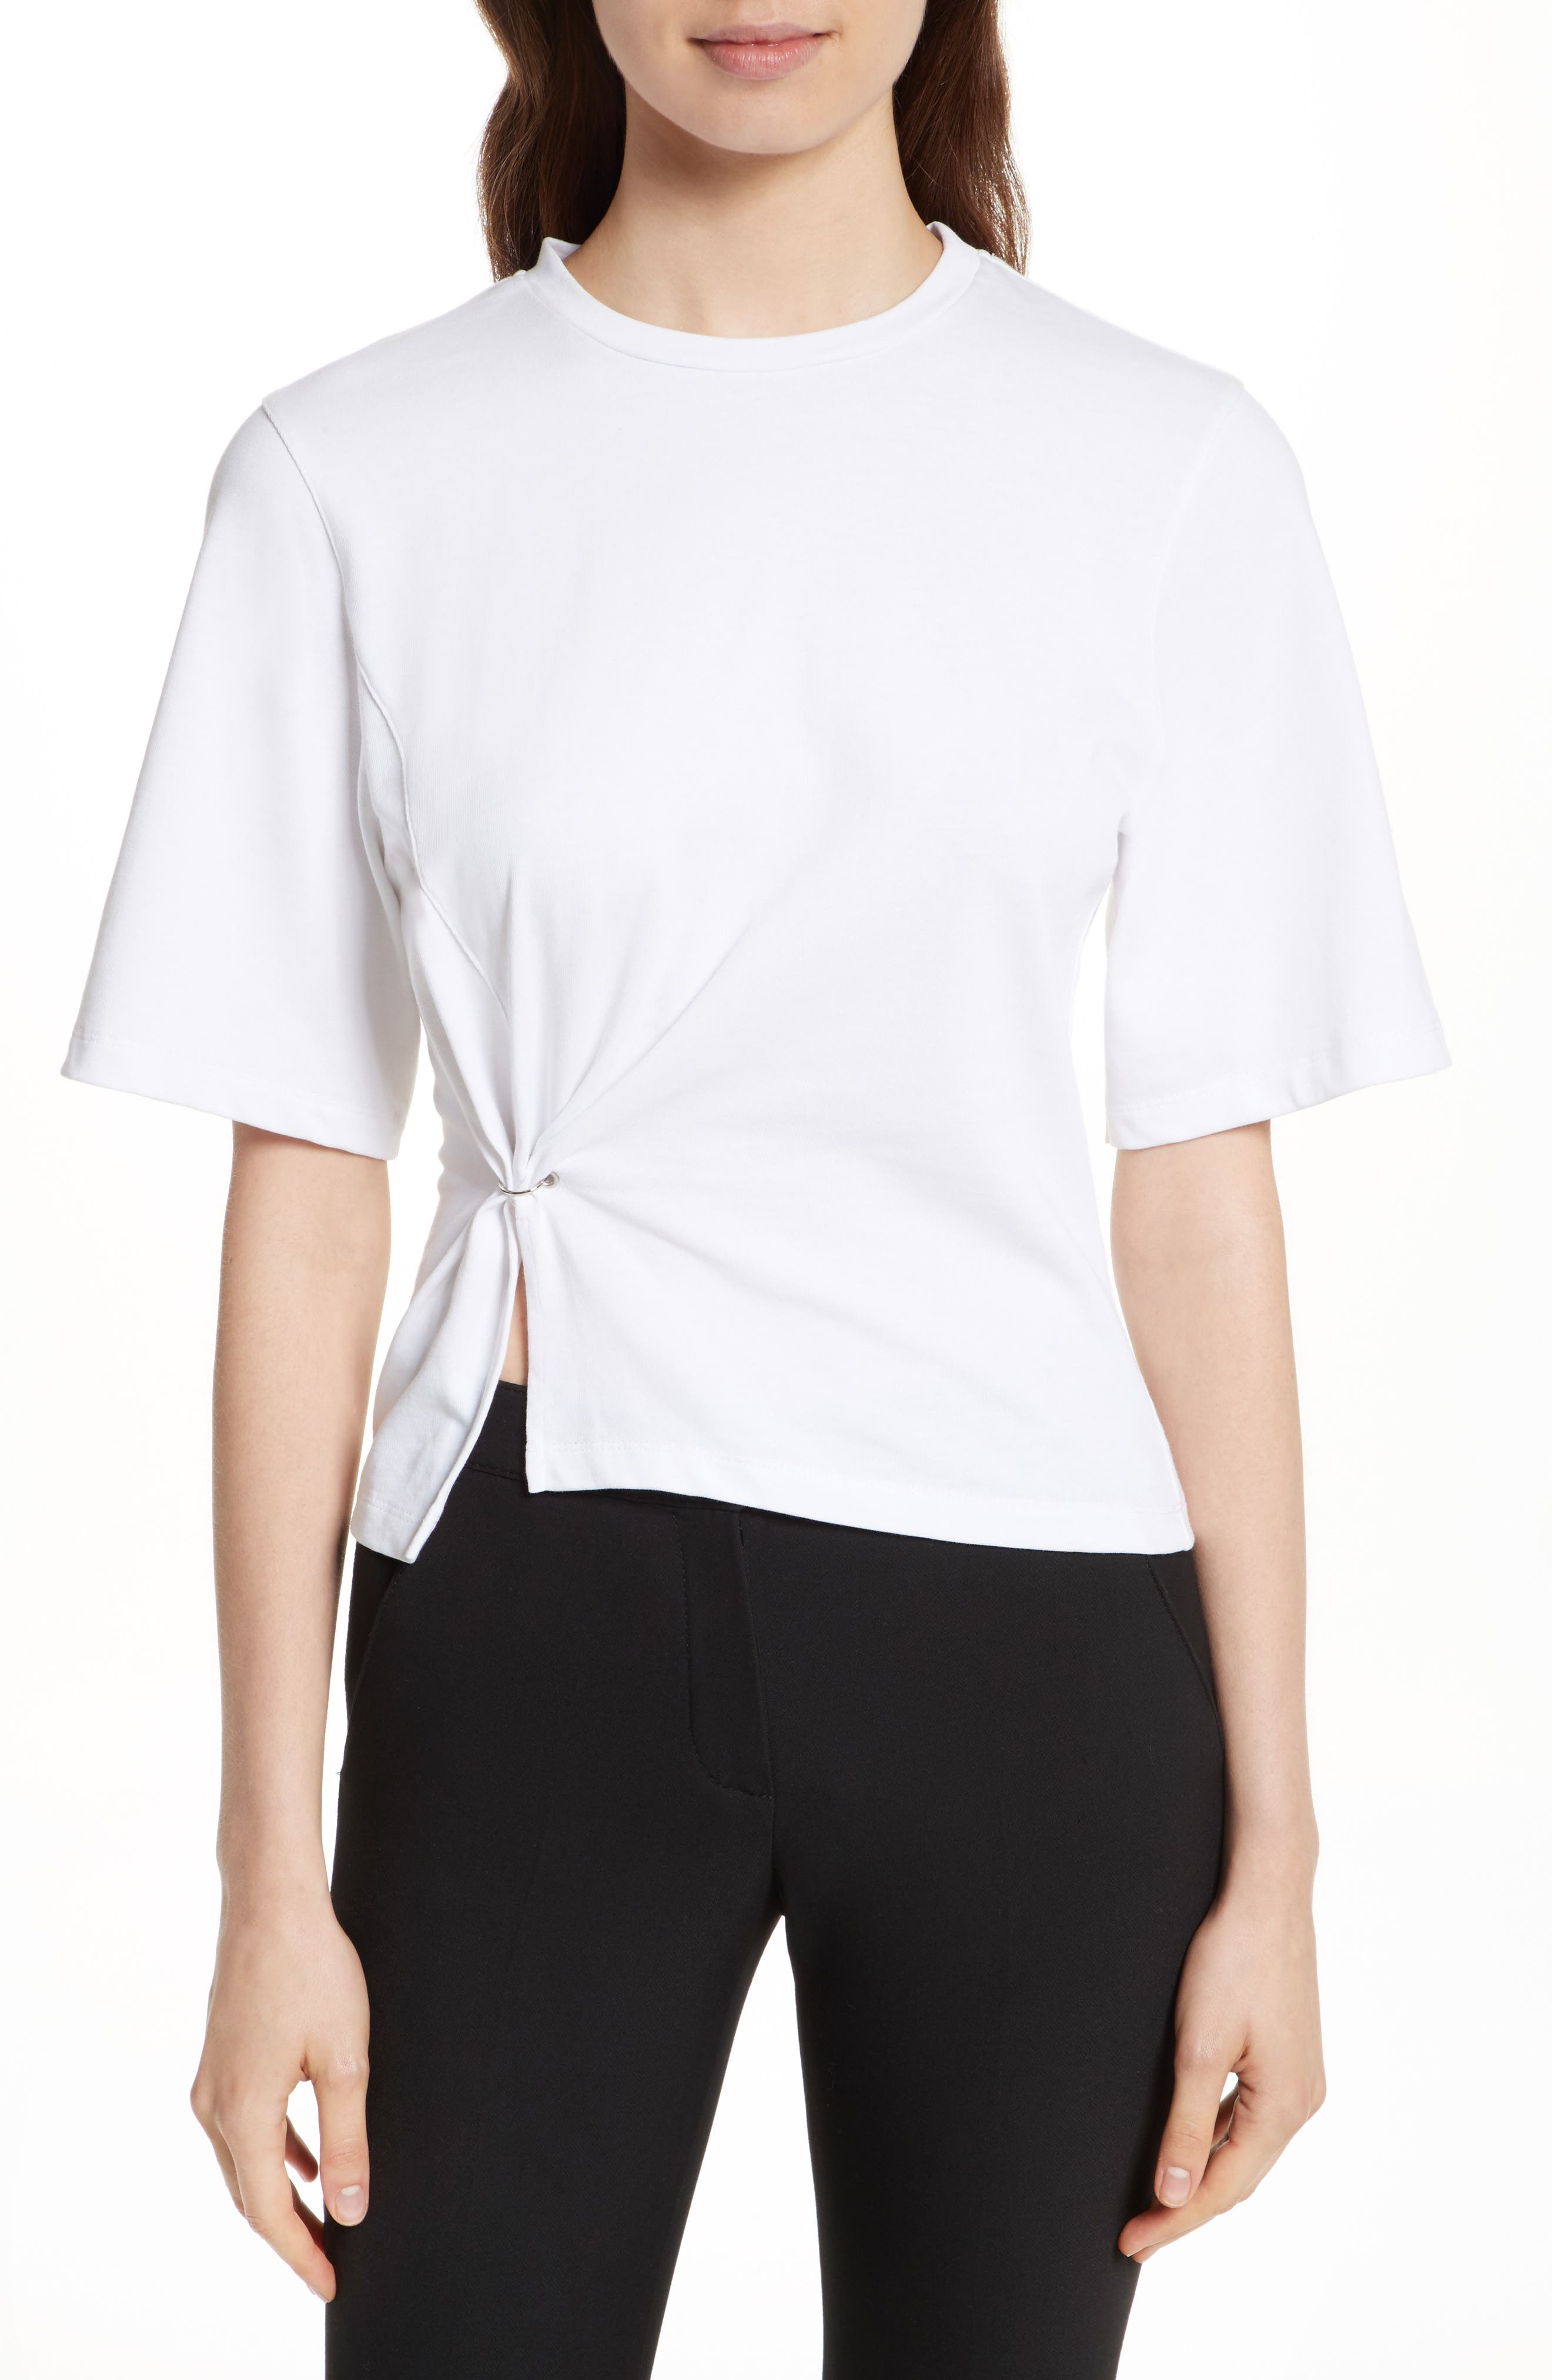 Alternate Image 1 Selected - 3.1 Phillip Lim Pierced Tee